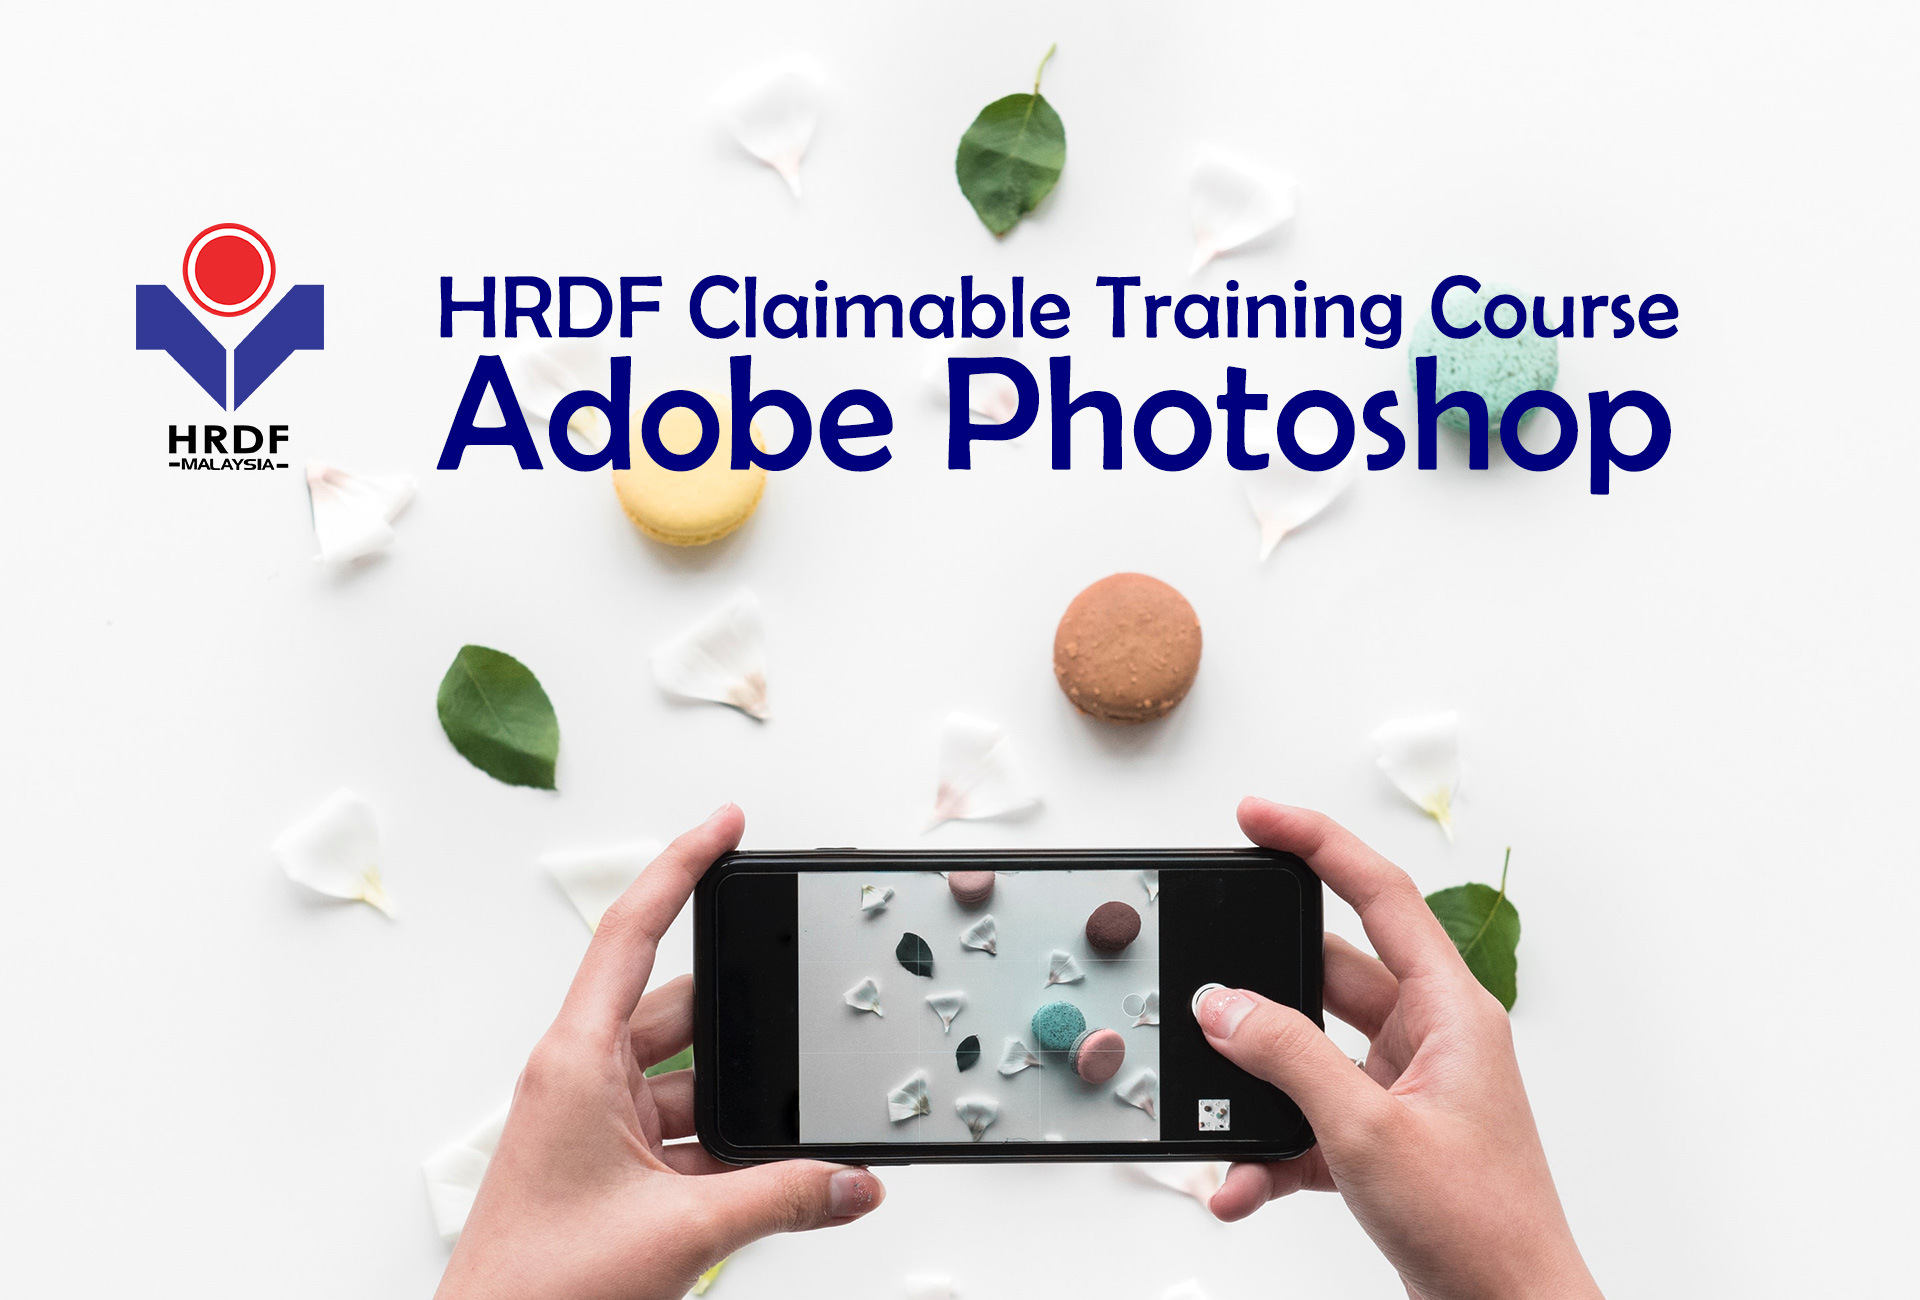 HRDF Claimable Training Course - Adobe Photoshop